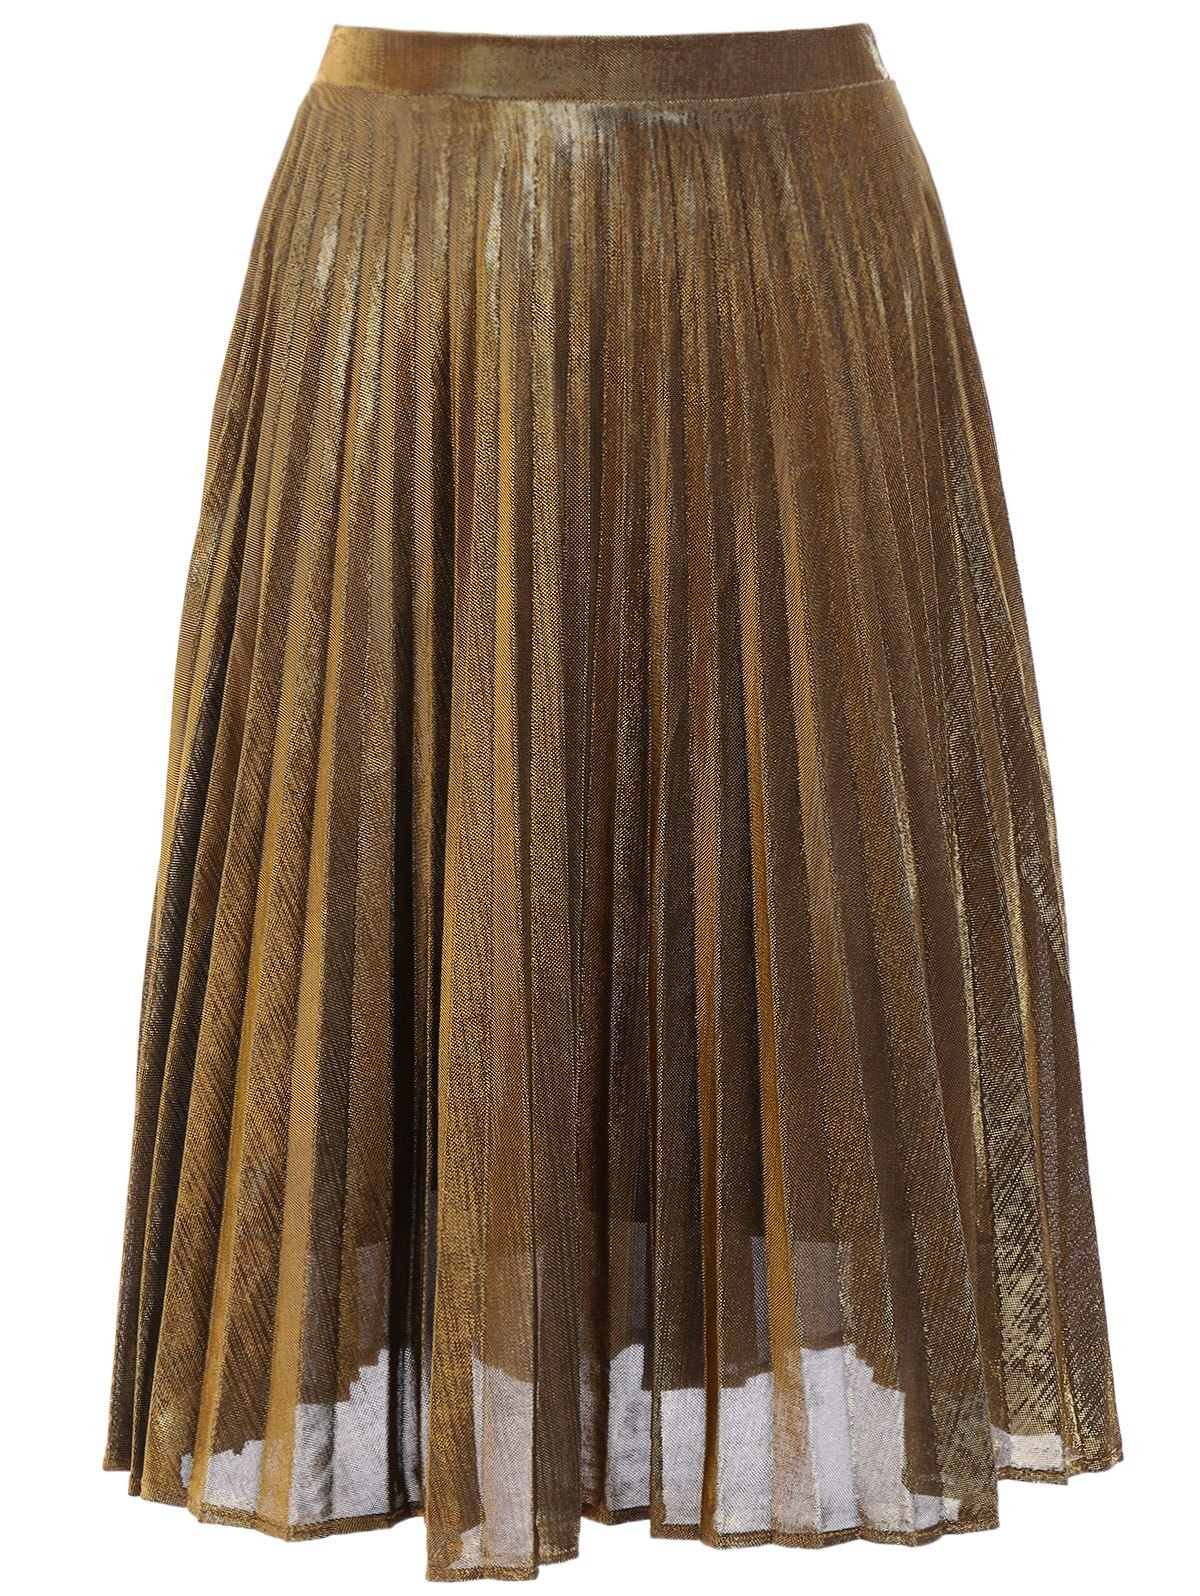 Fashionable Solid Color Pleated Midi Skirt For Women